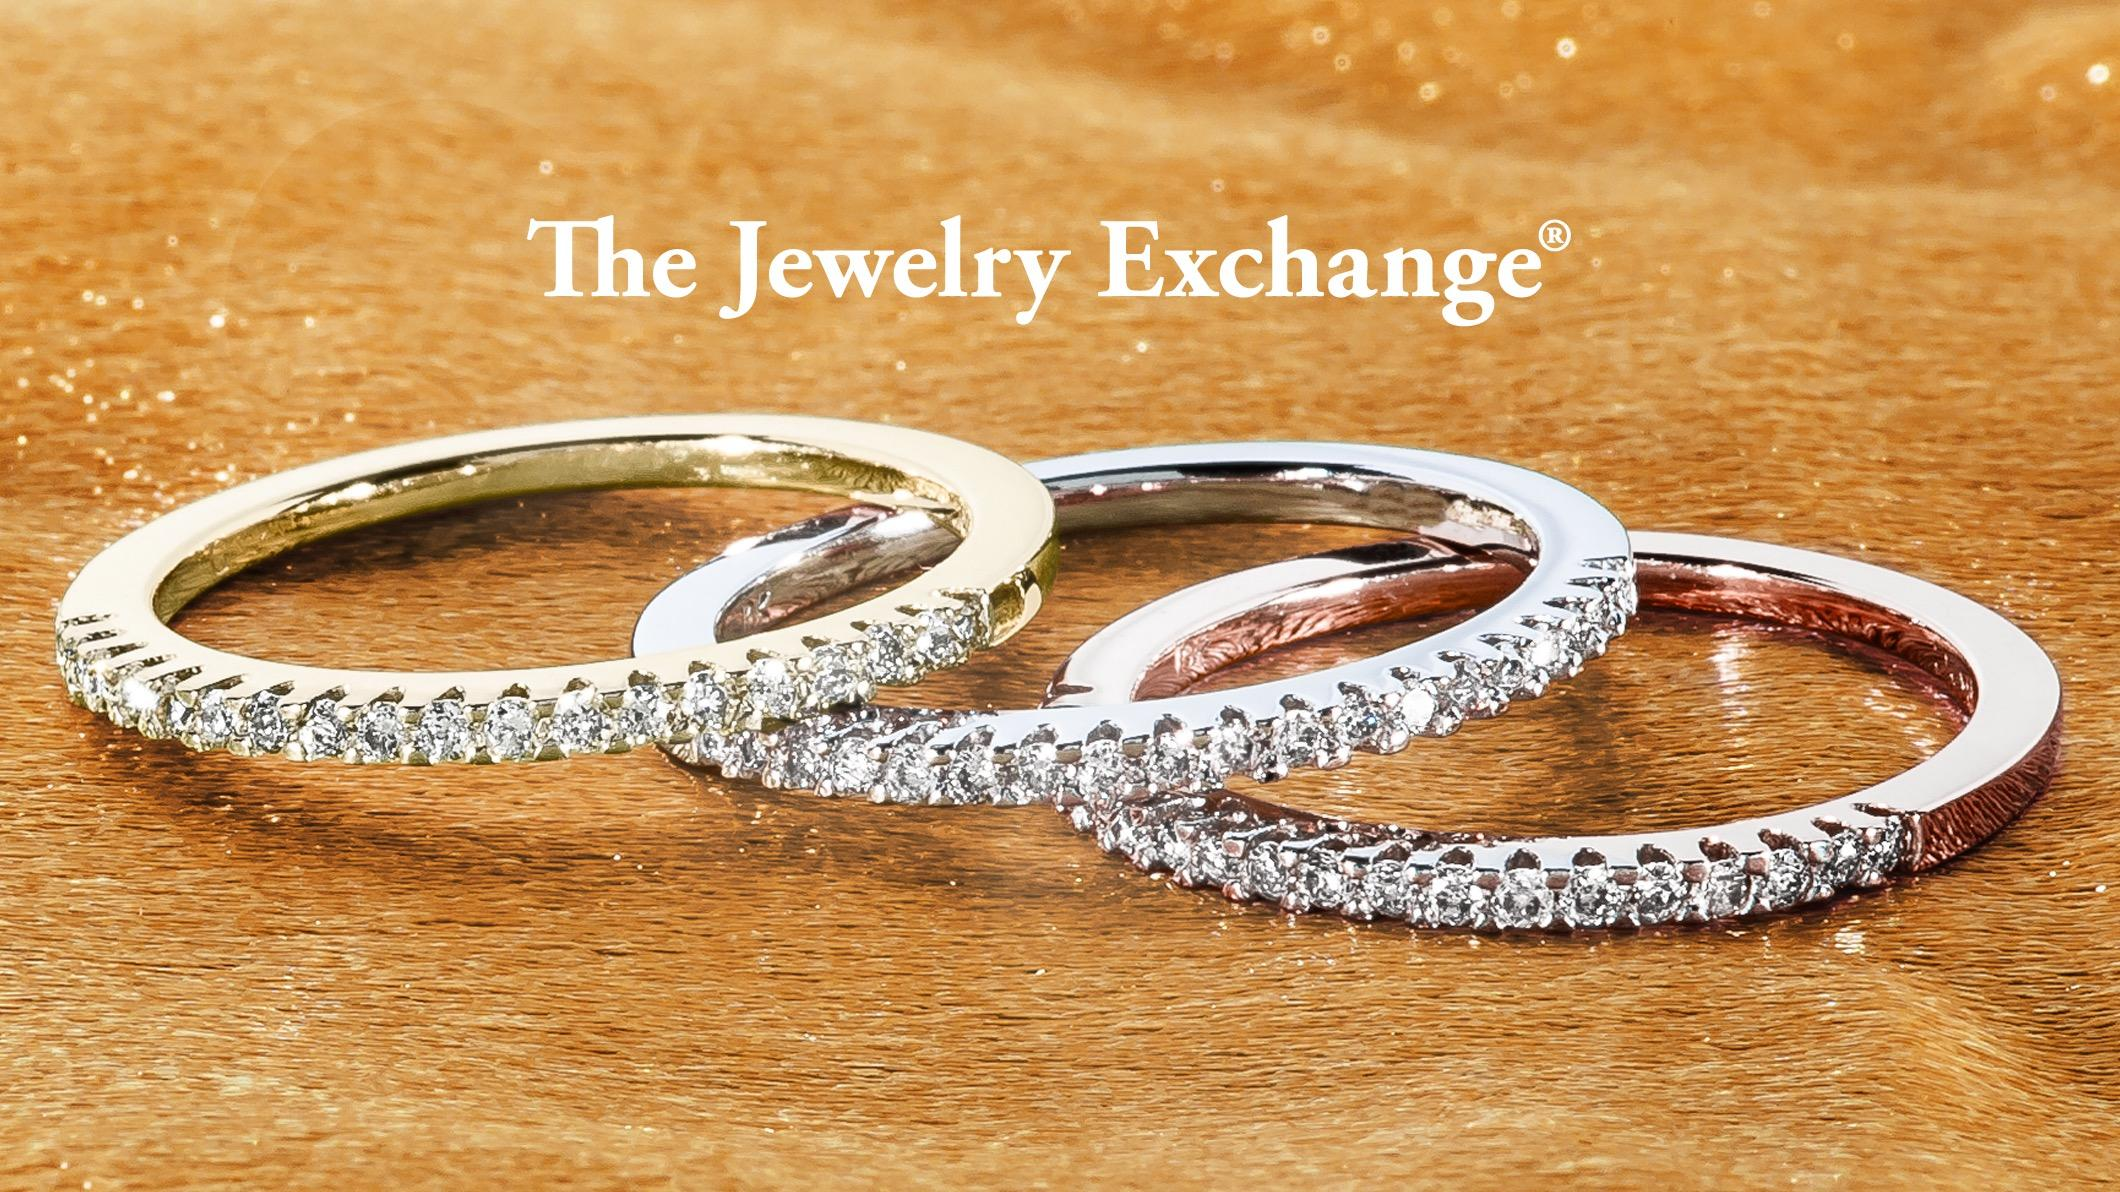 the jewelry exchange coupons sudbury ma near me 8coupons